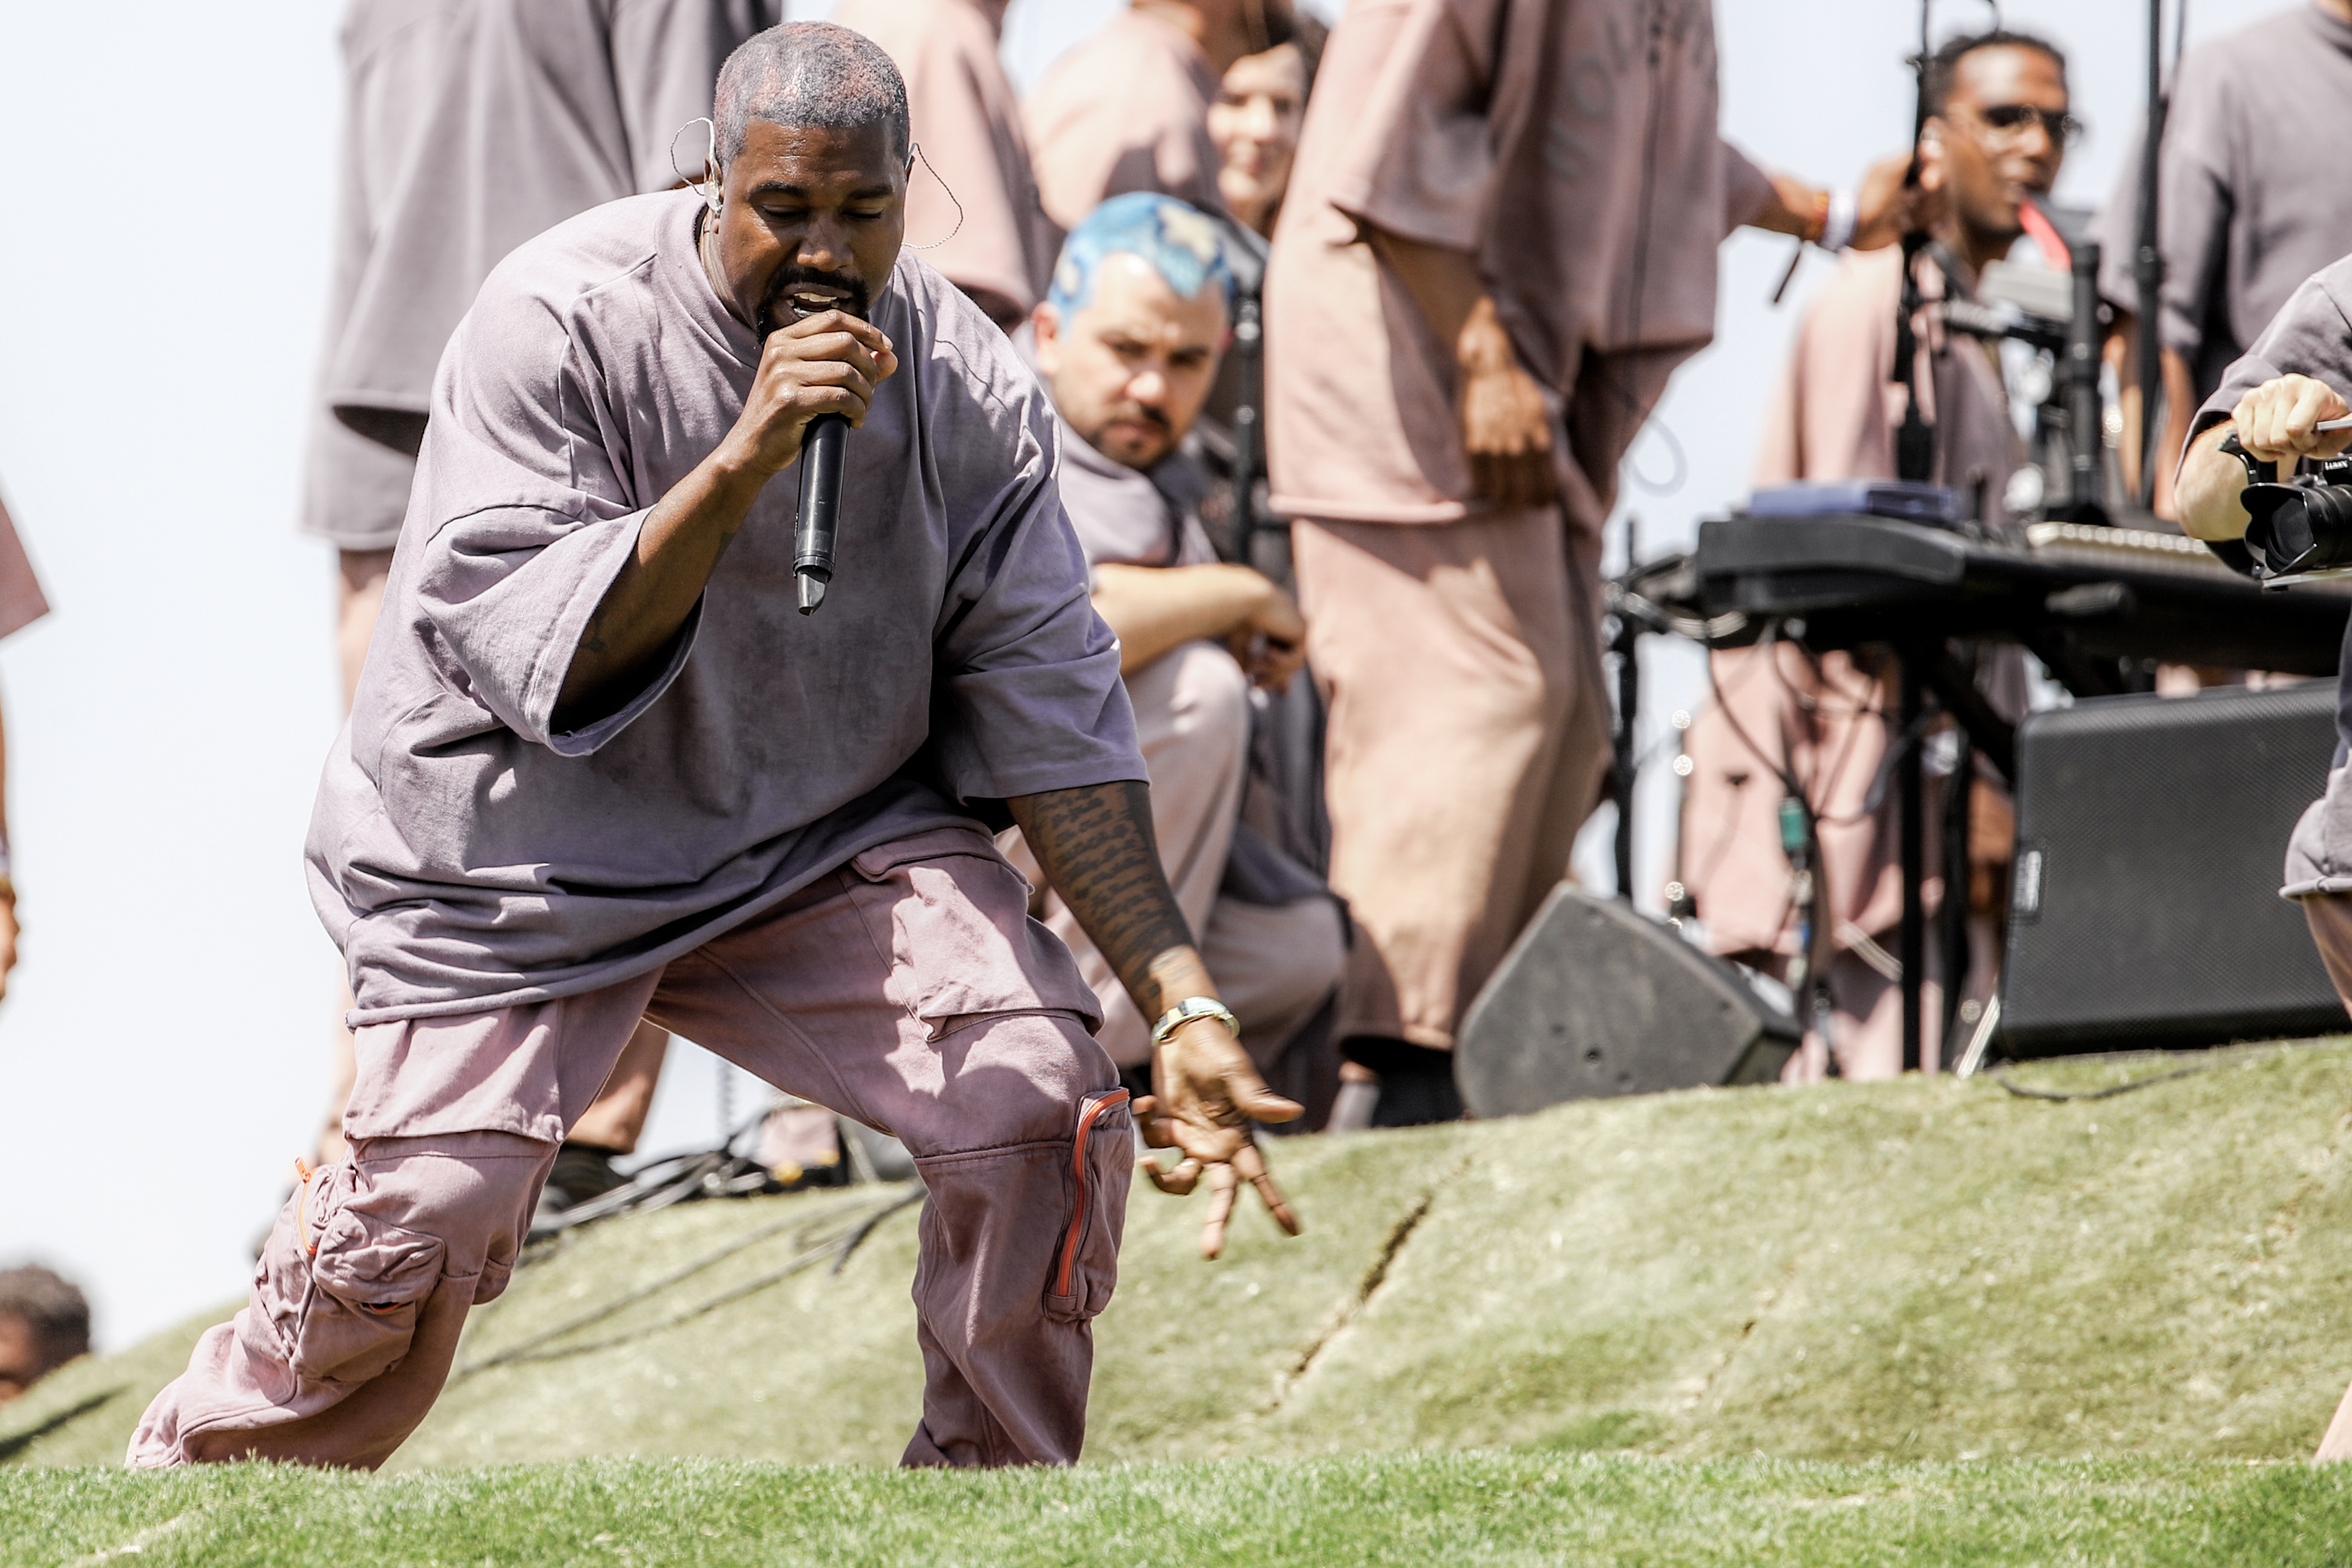 Kanye West took his Sunday Service to Salt Lake City and shared his political views with the crowd and talked about past backlash.